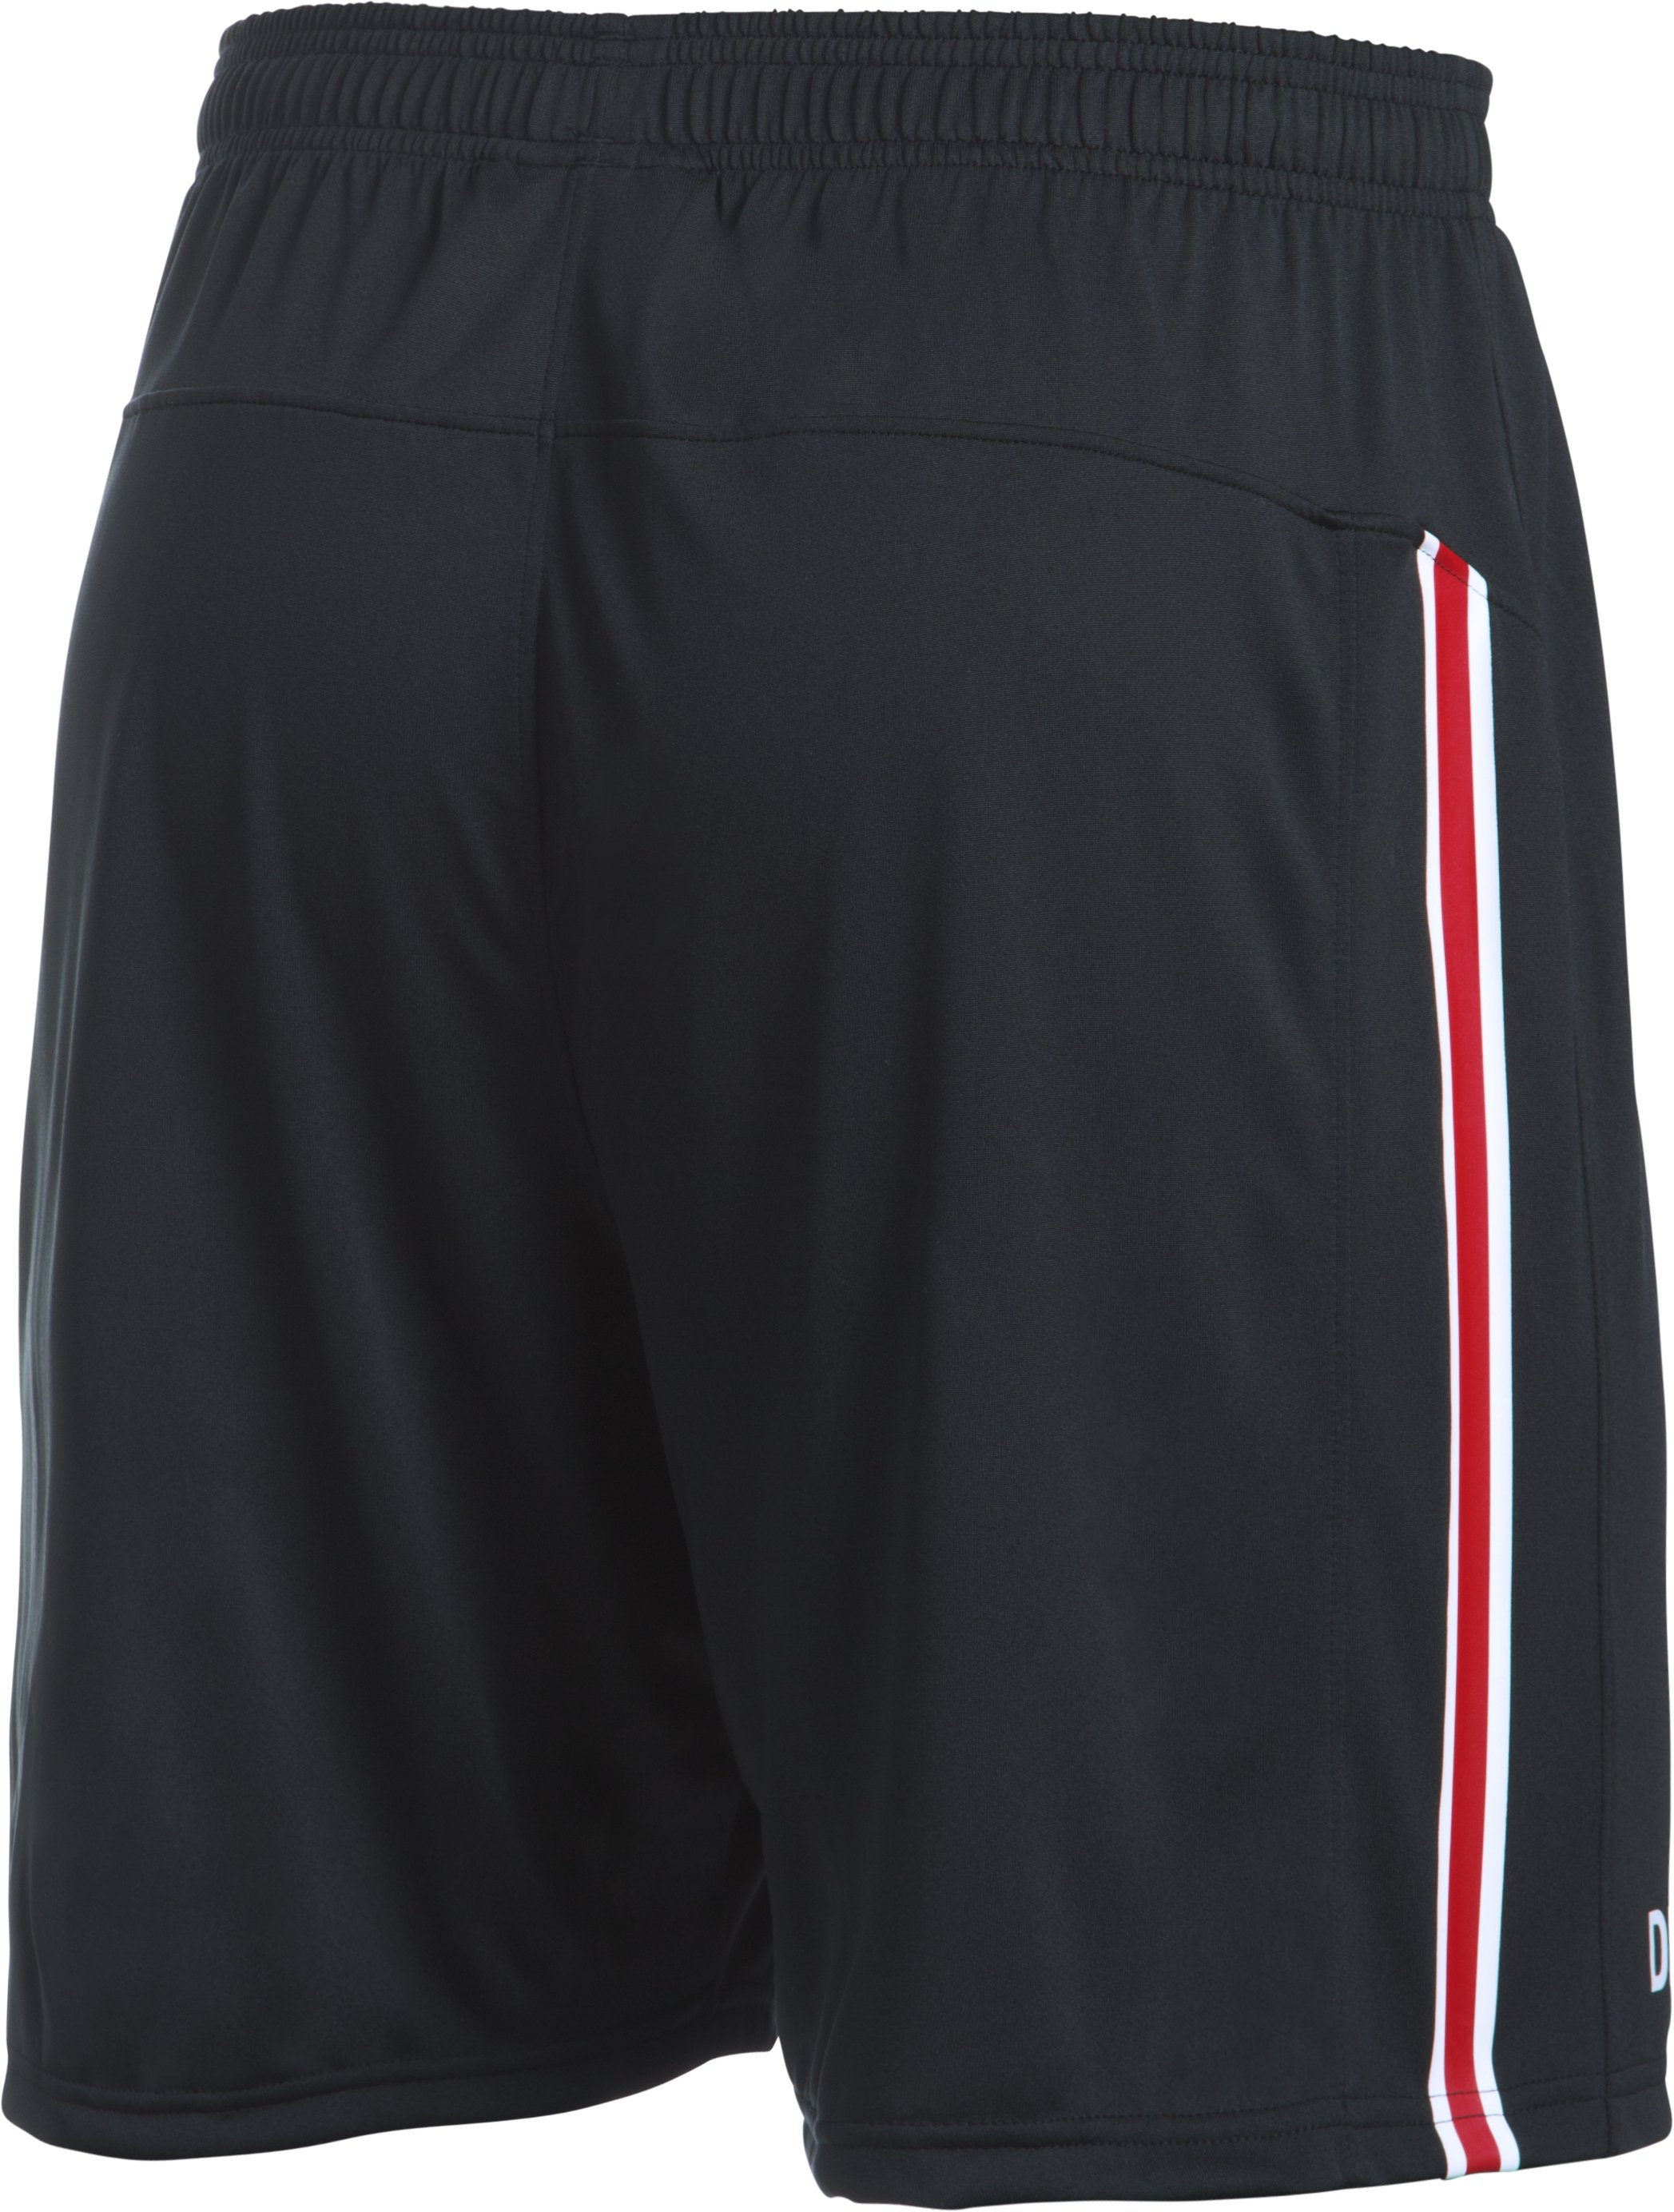 Men's Colo-Colo 16/17 Replica Shorts, Black , undefined